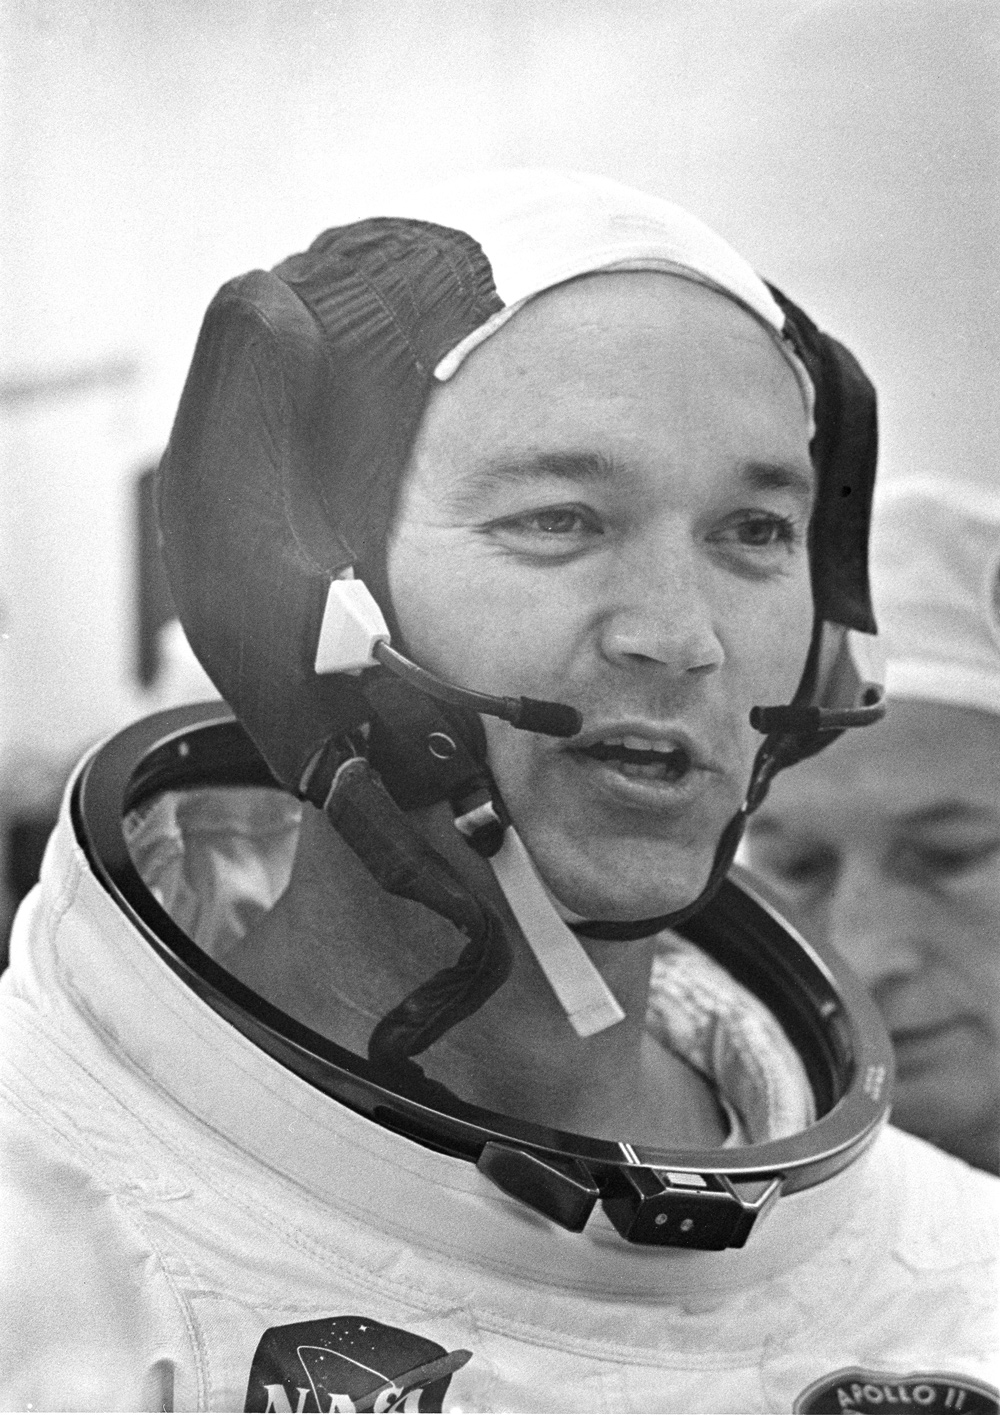 Command Module pilot Michael Collins in his space suit